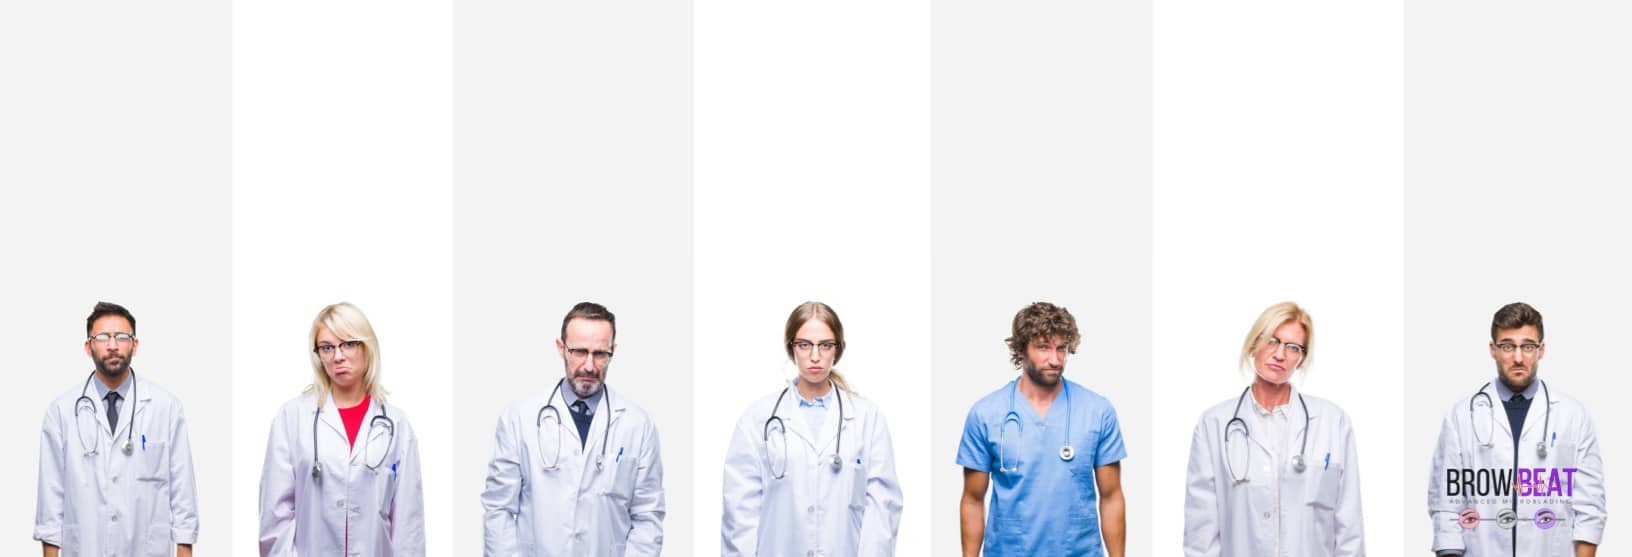 C057C289 3165 40F7 835D 74904A2E61F2 Have you ever considered a medical career?